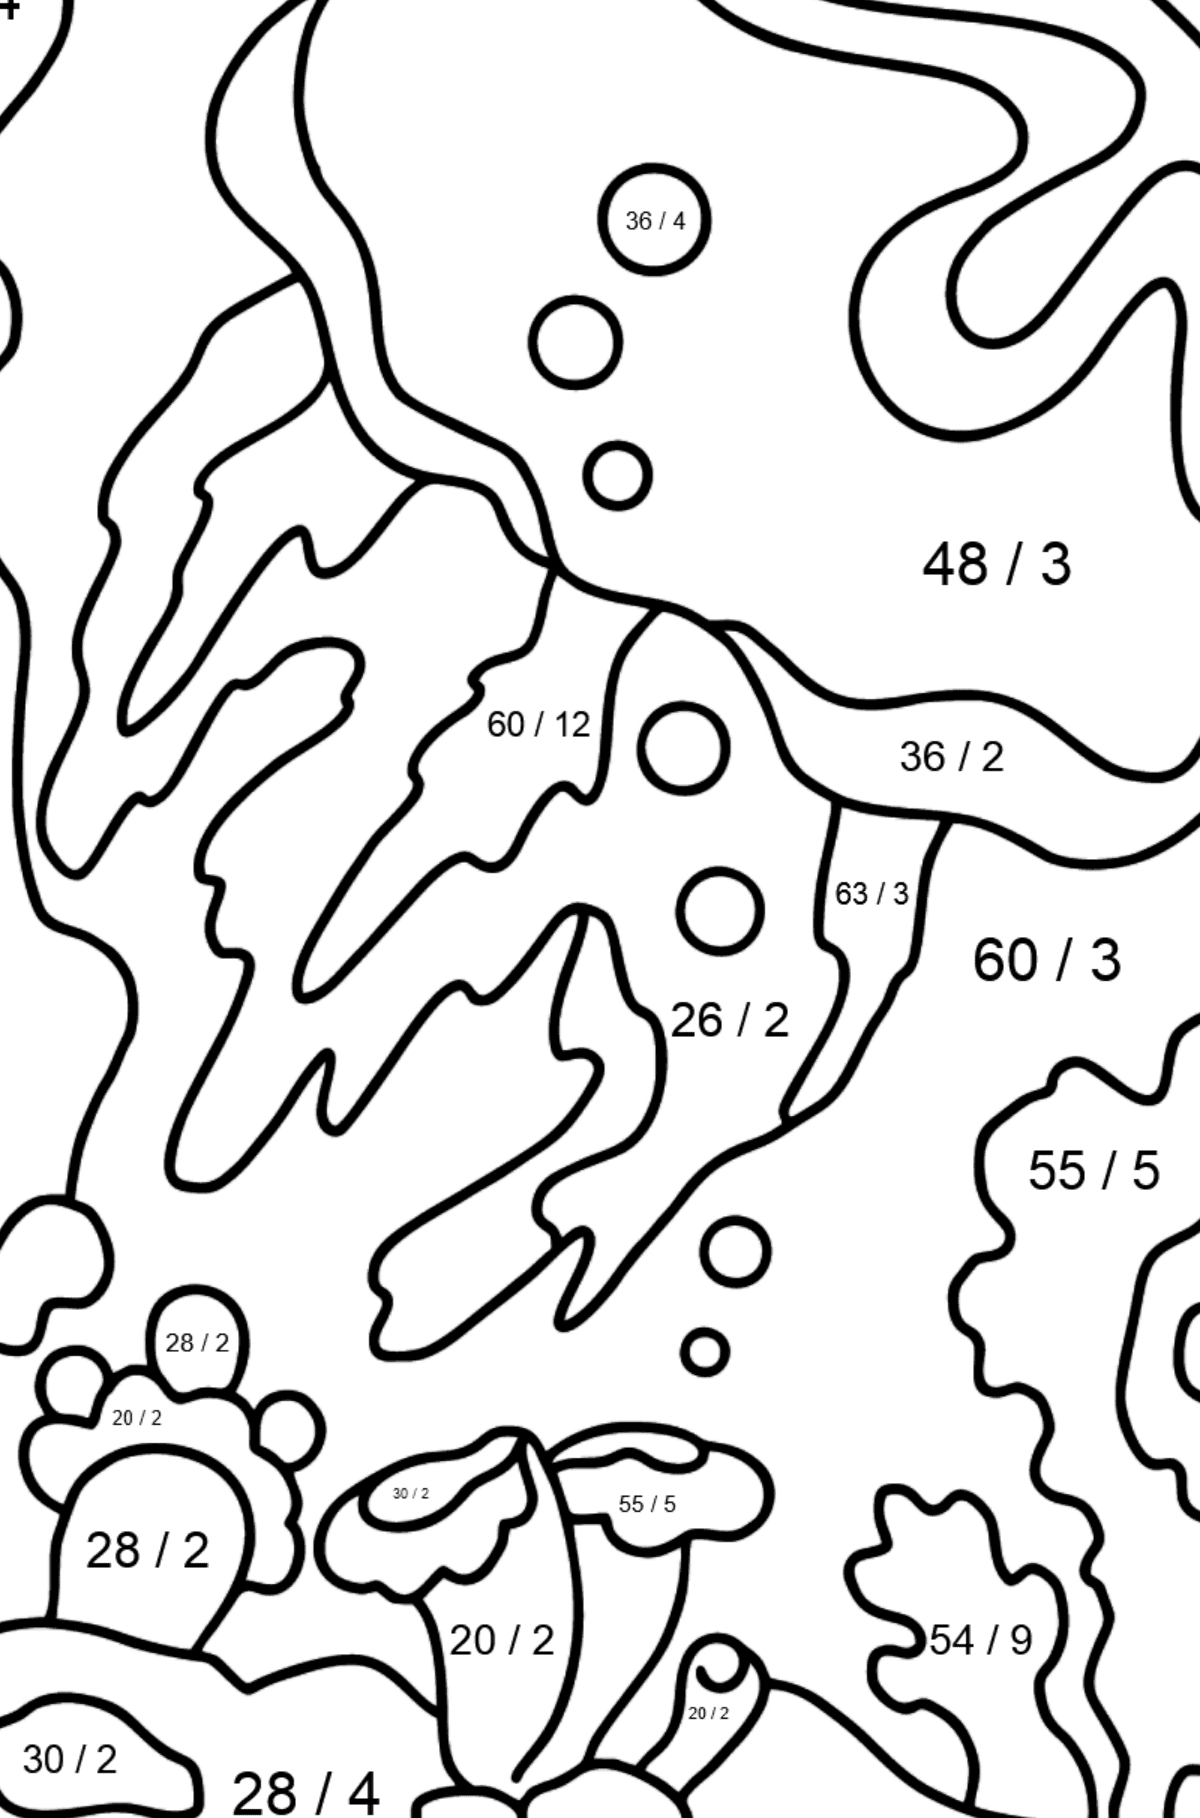 A Giant Jellyfish Coloring Page - Math Coloring - Division for Kids